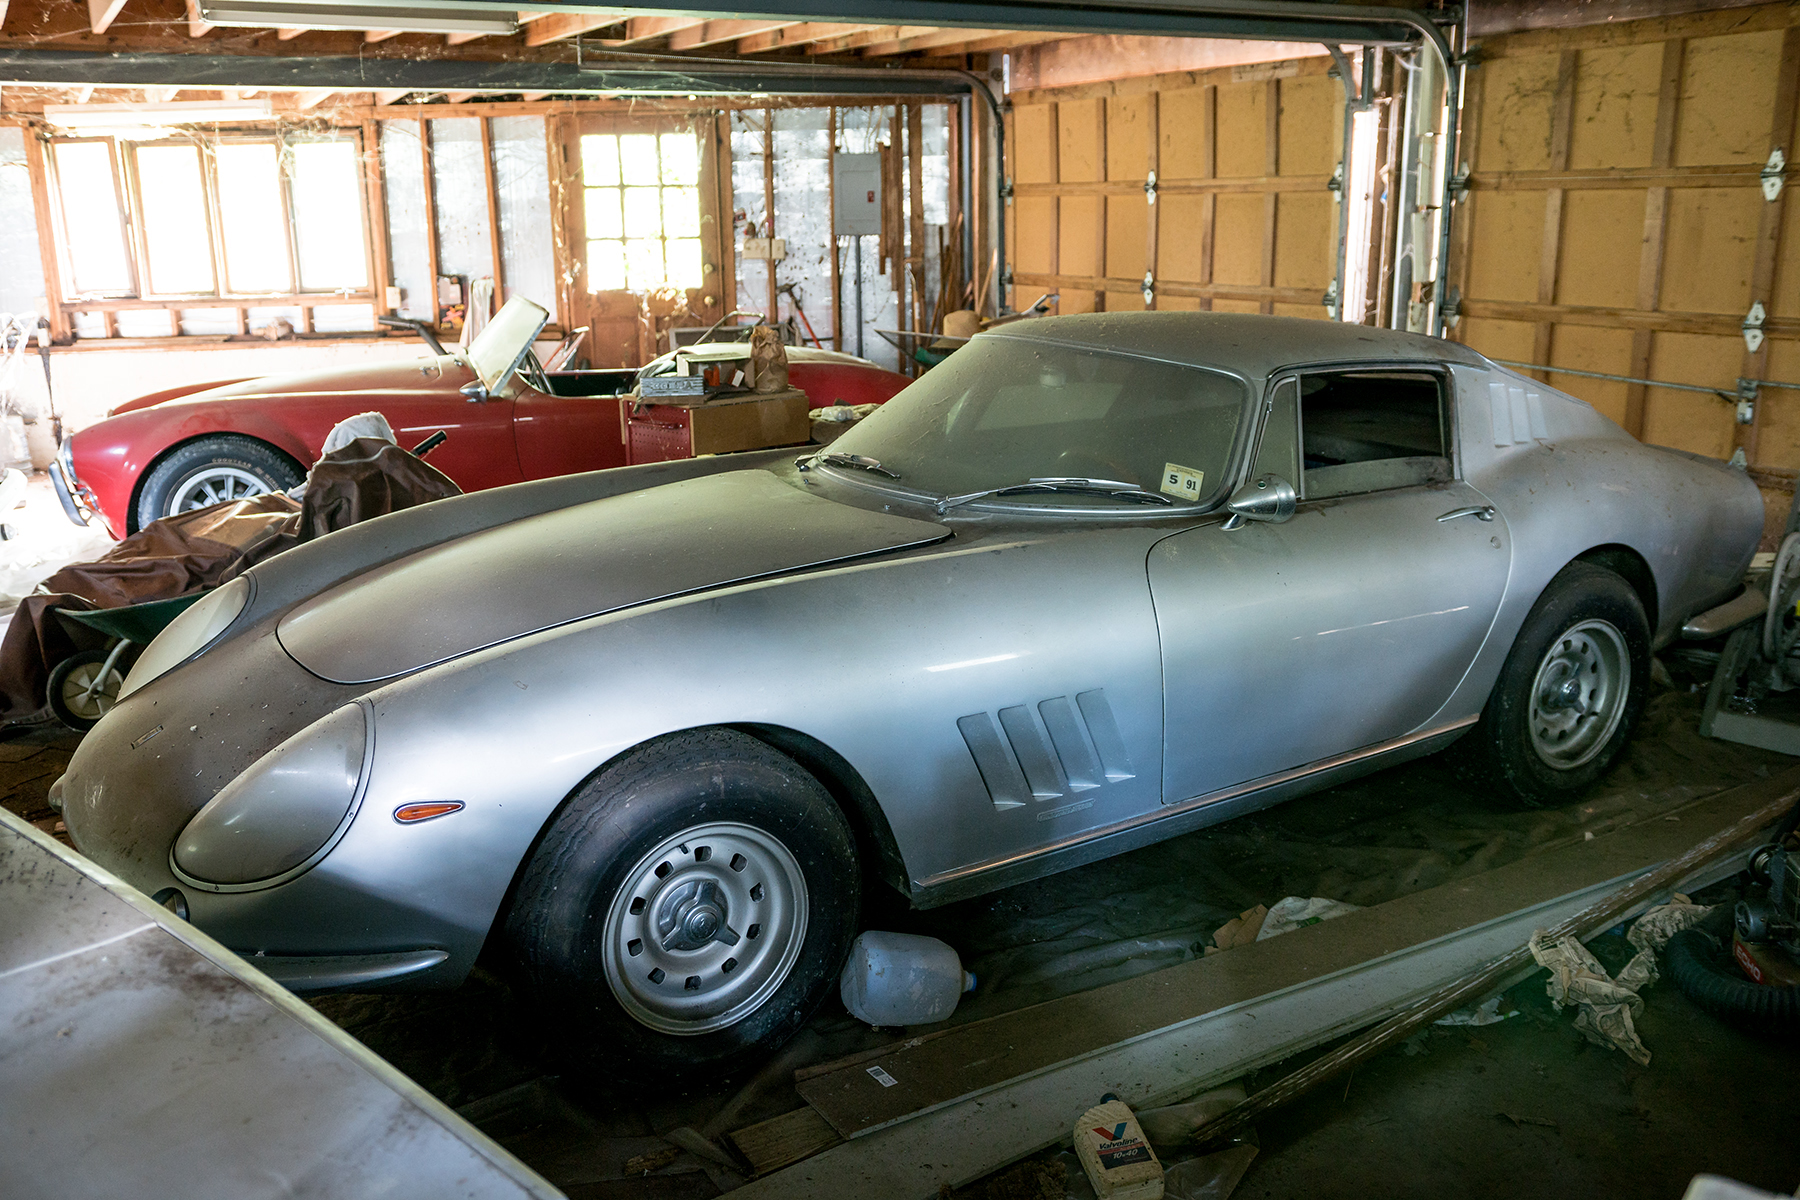 1966 Ferrari 275 GTB Long Nose Alloy gooding-barn-find-a-amelia-island-17183-1-P